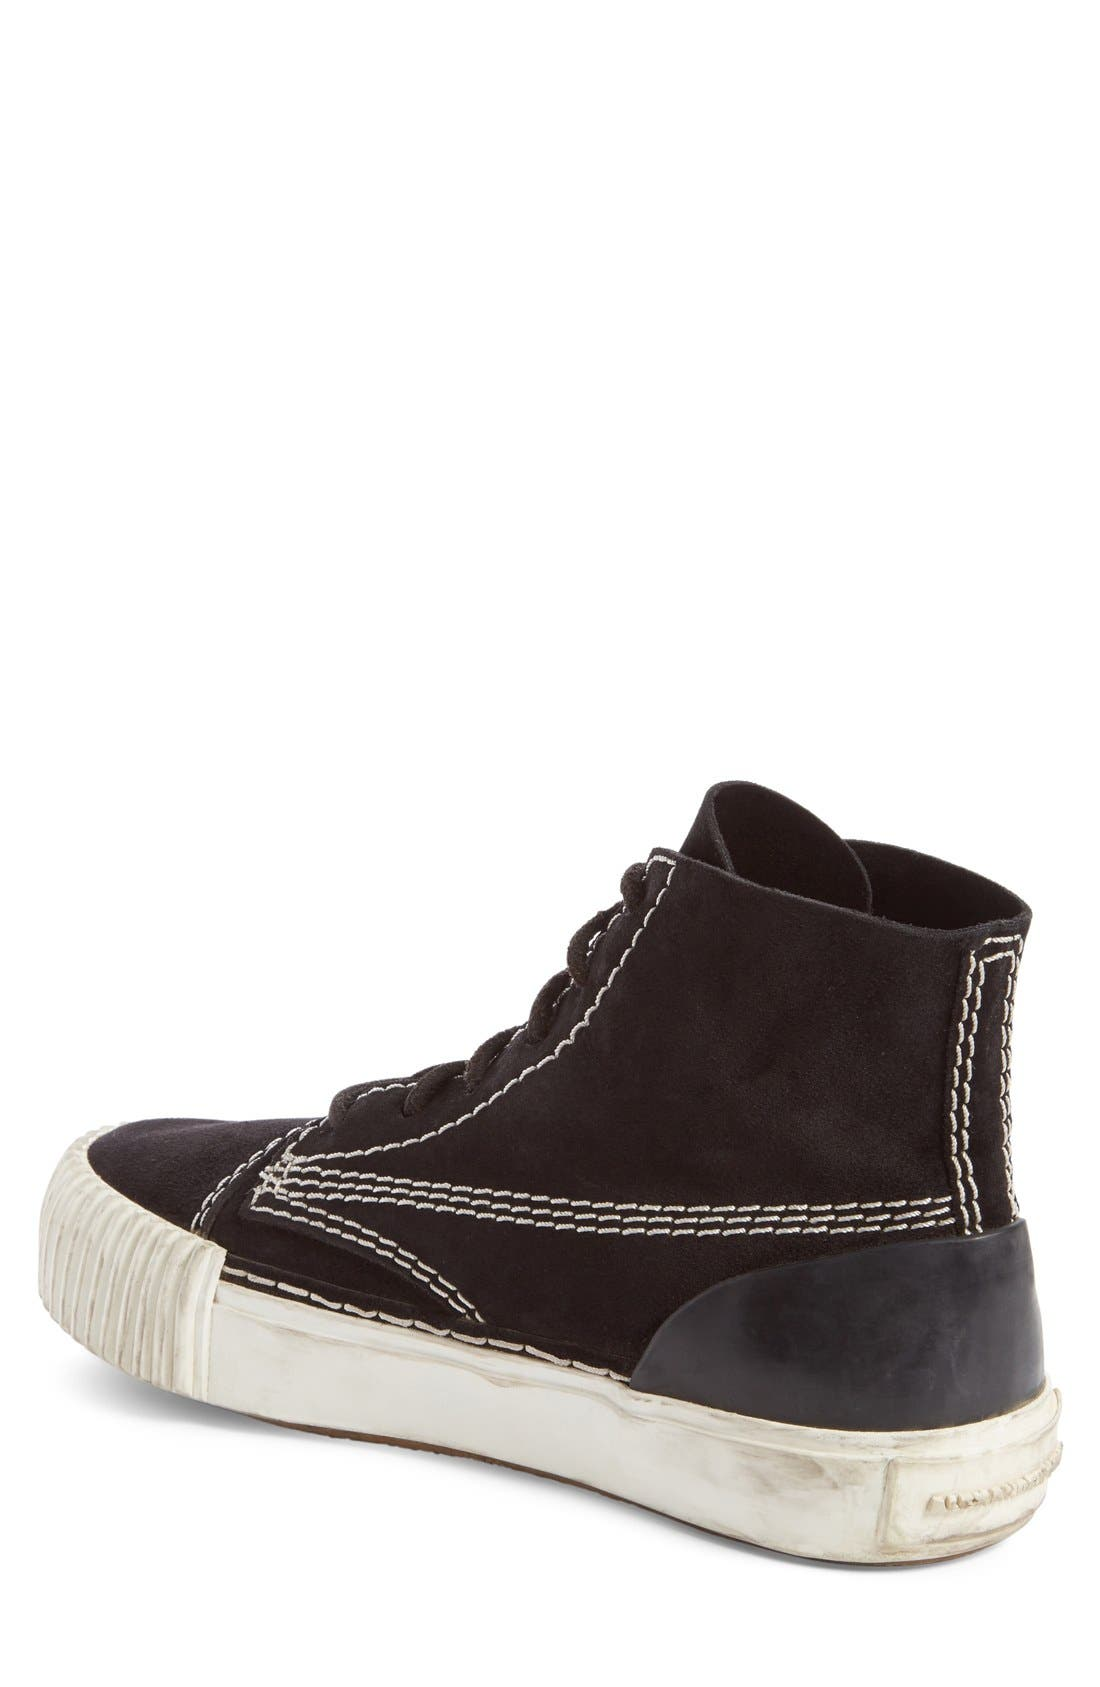 'Perry' Suede High Top Sneaker,                             Alternate thumbnail 8, color,                             001